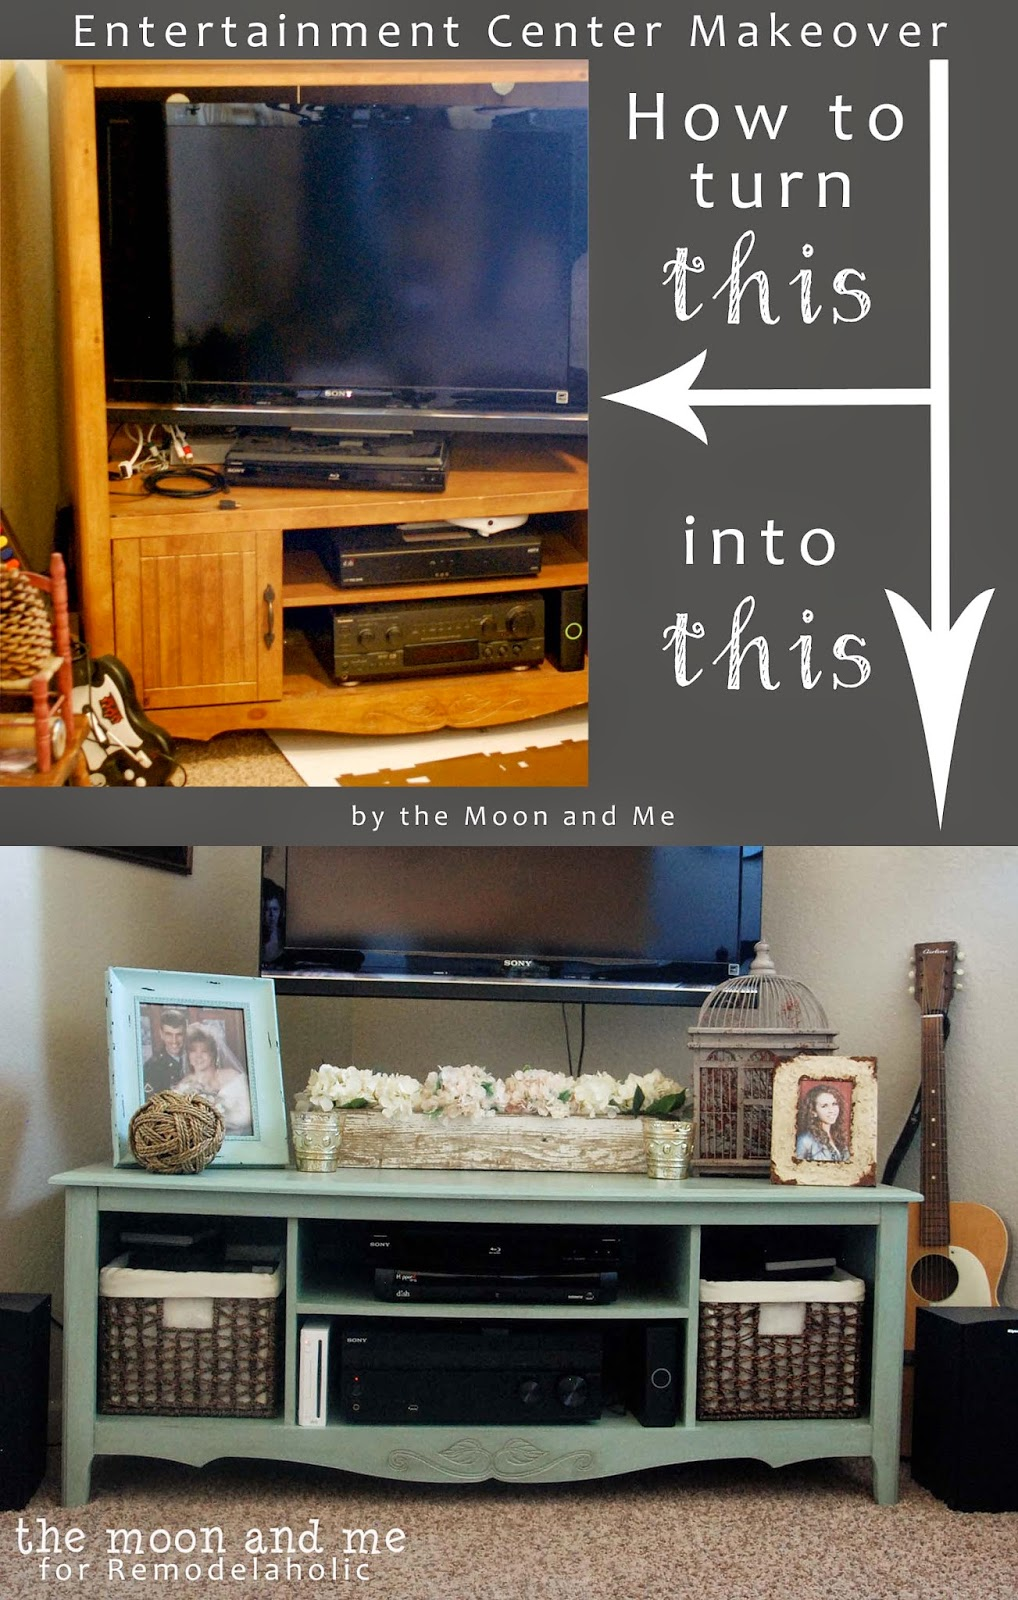 How To Turn A Garage Into A Bedroom: Turn An Entertainment Center Into A TV